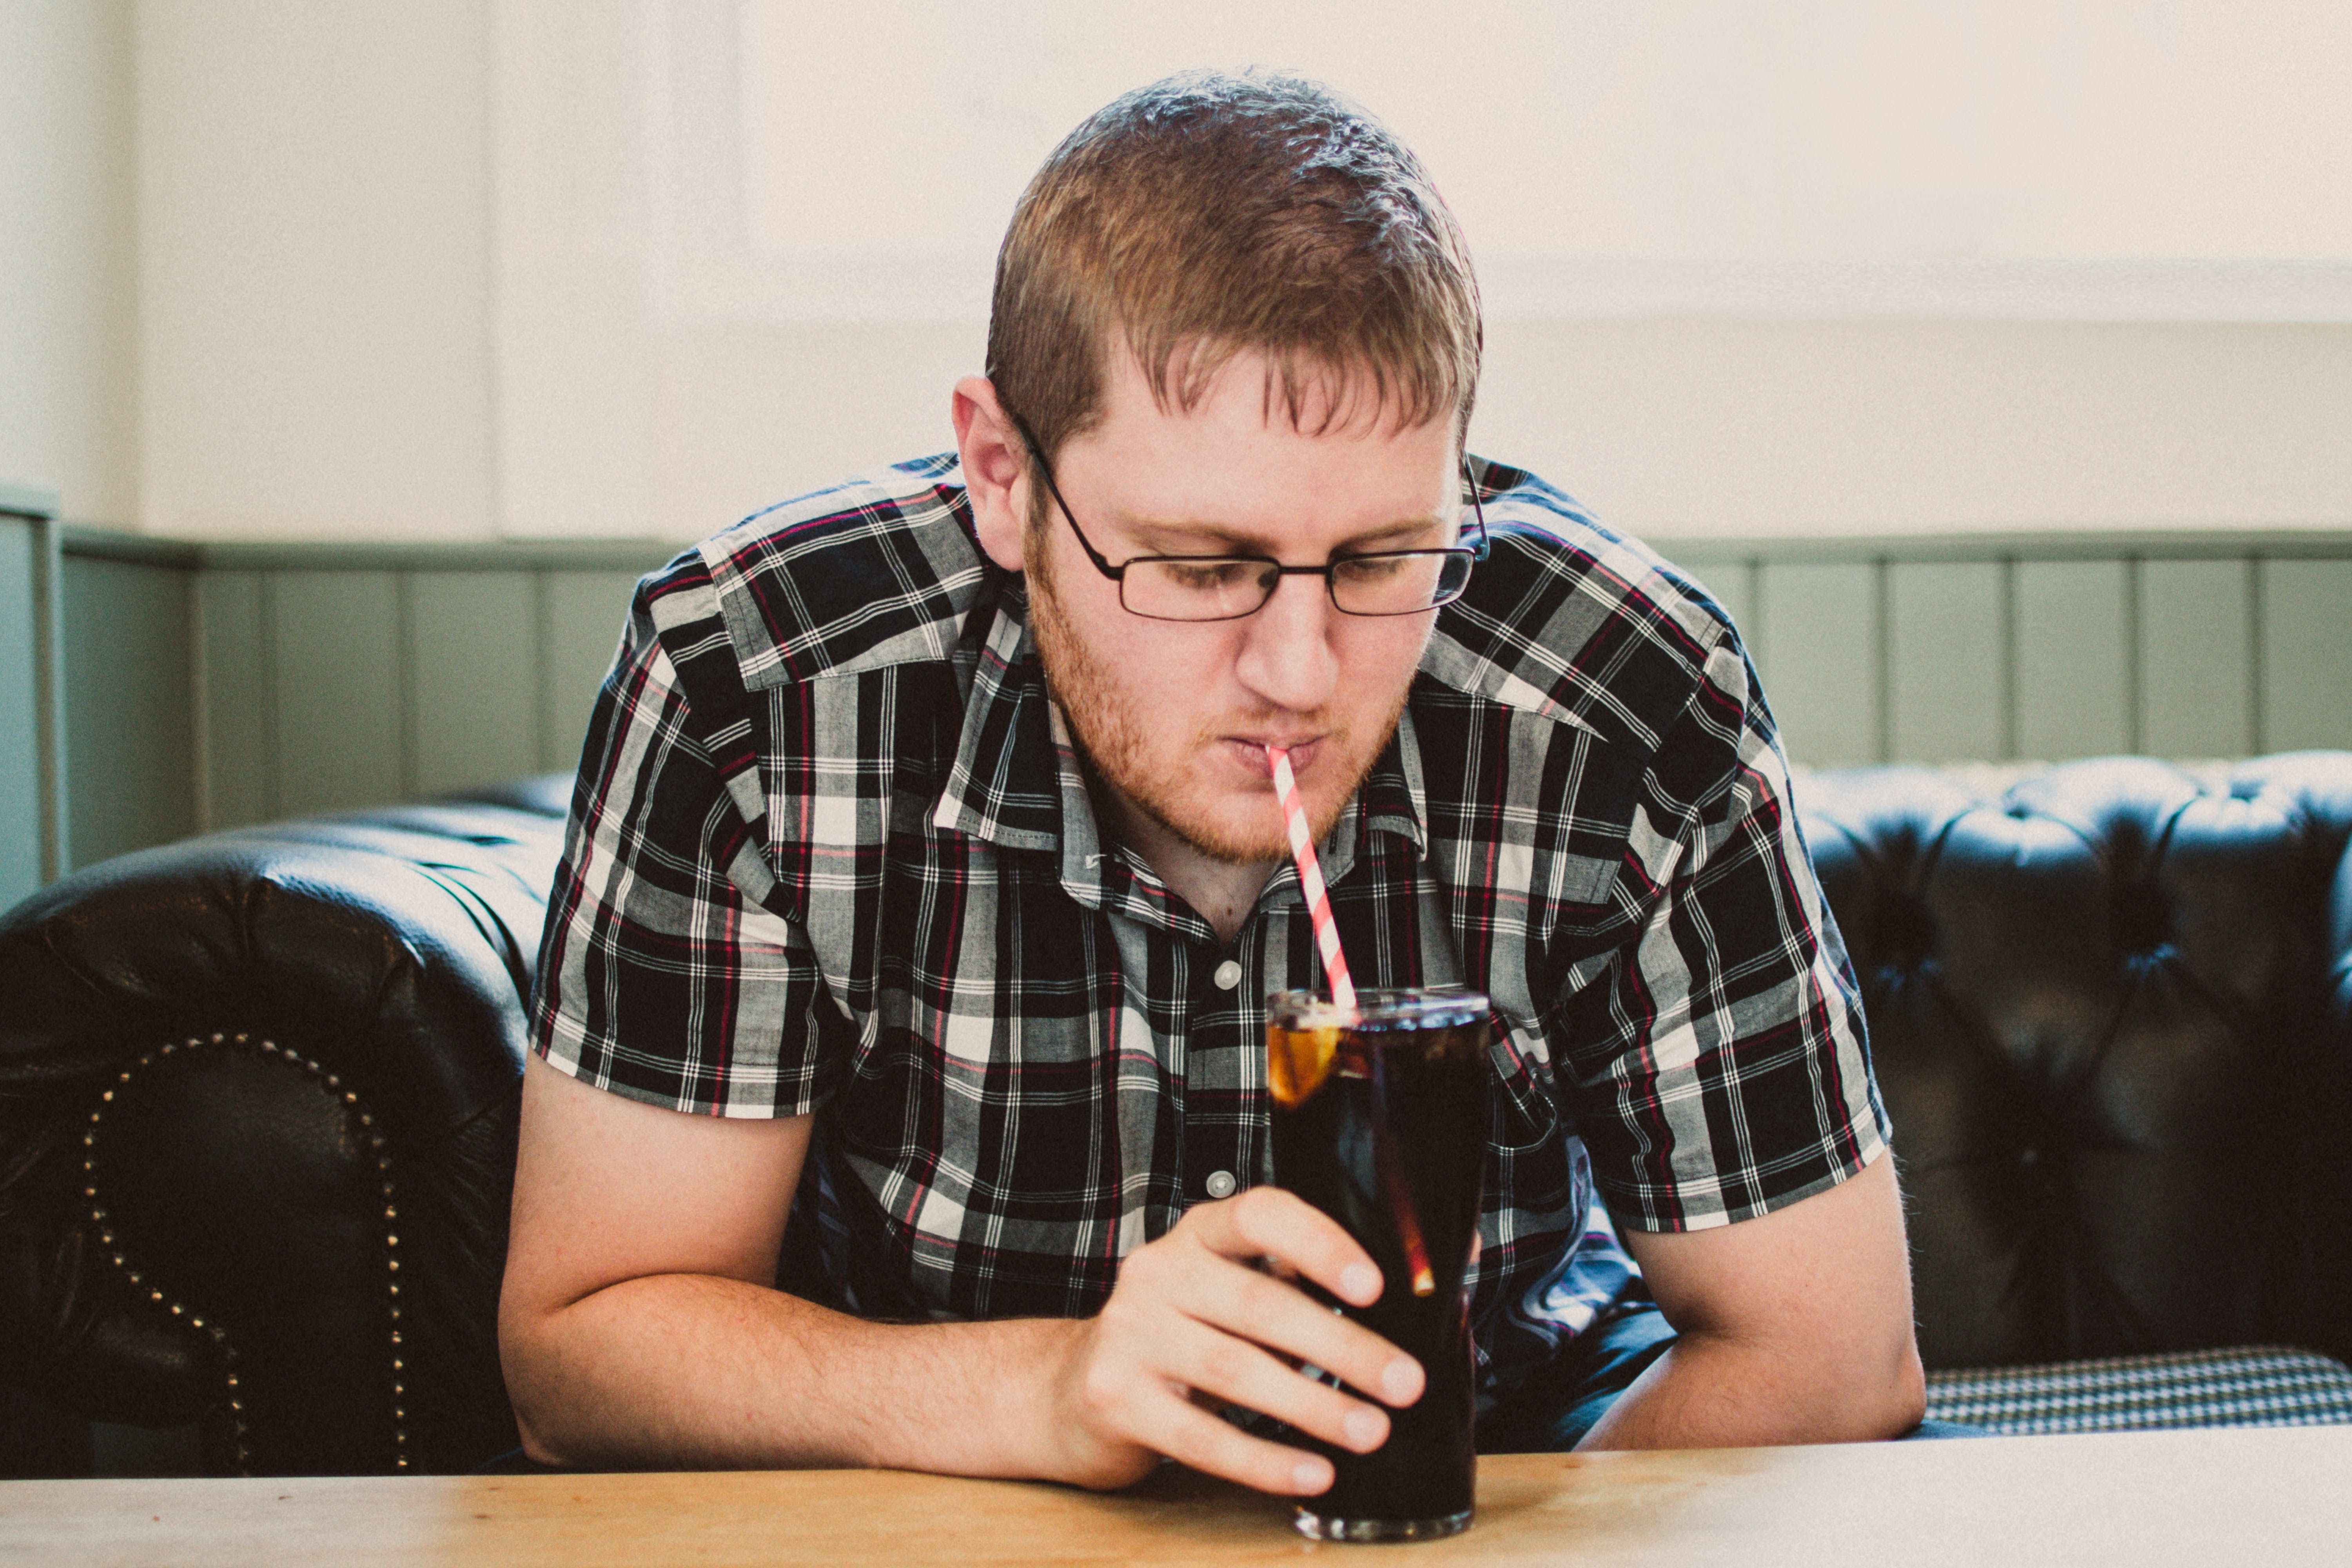 Man Sipping Drink From Clear Glass